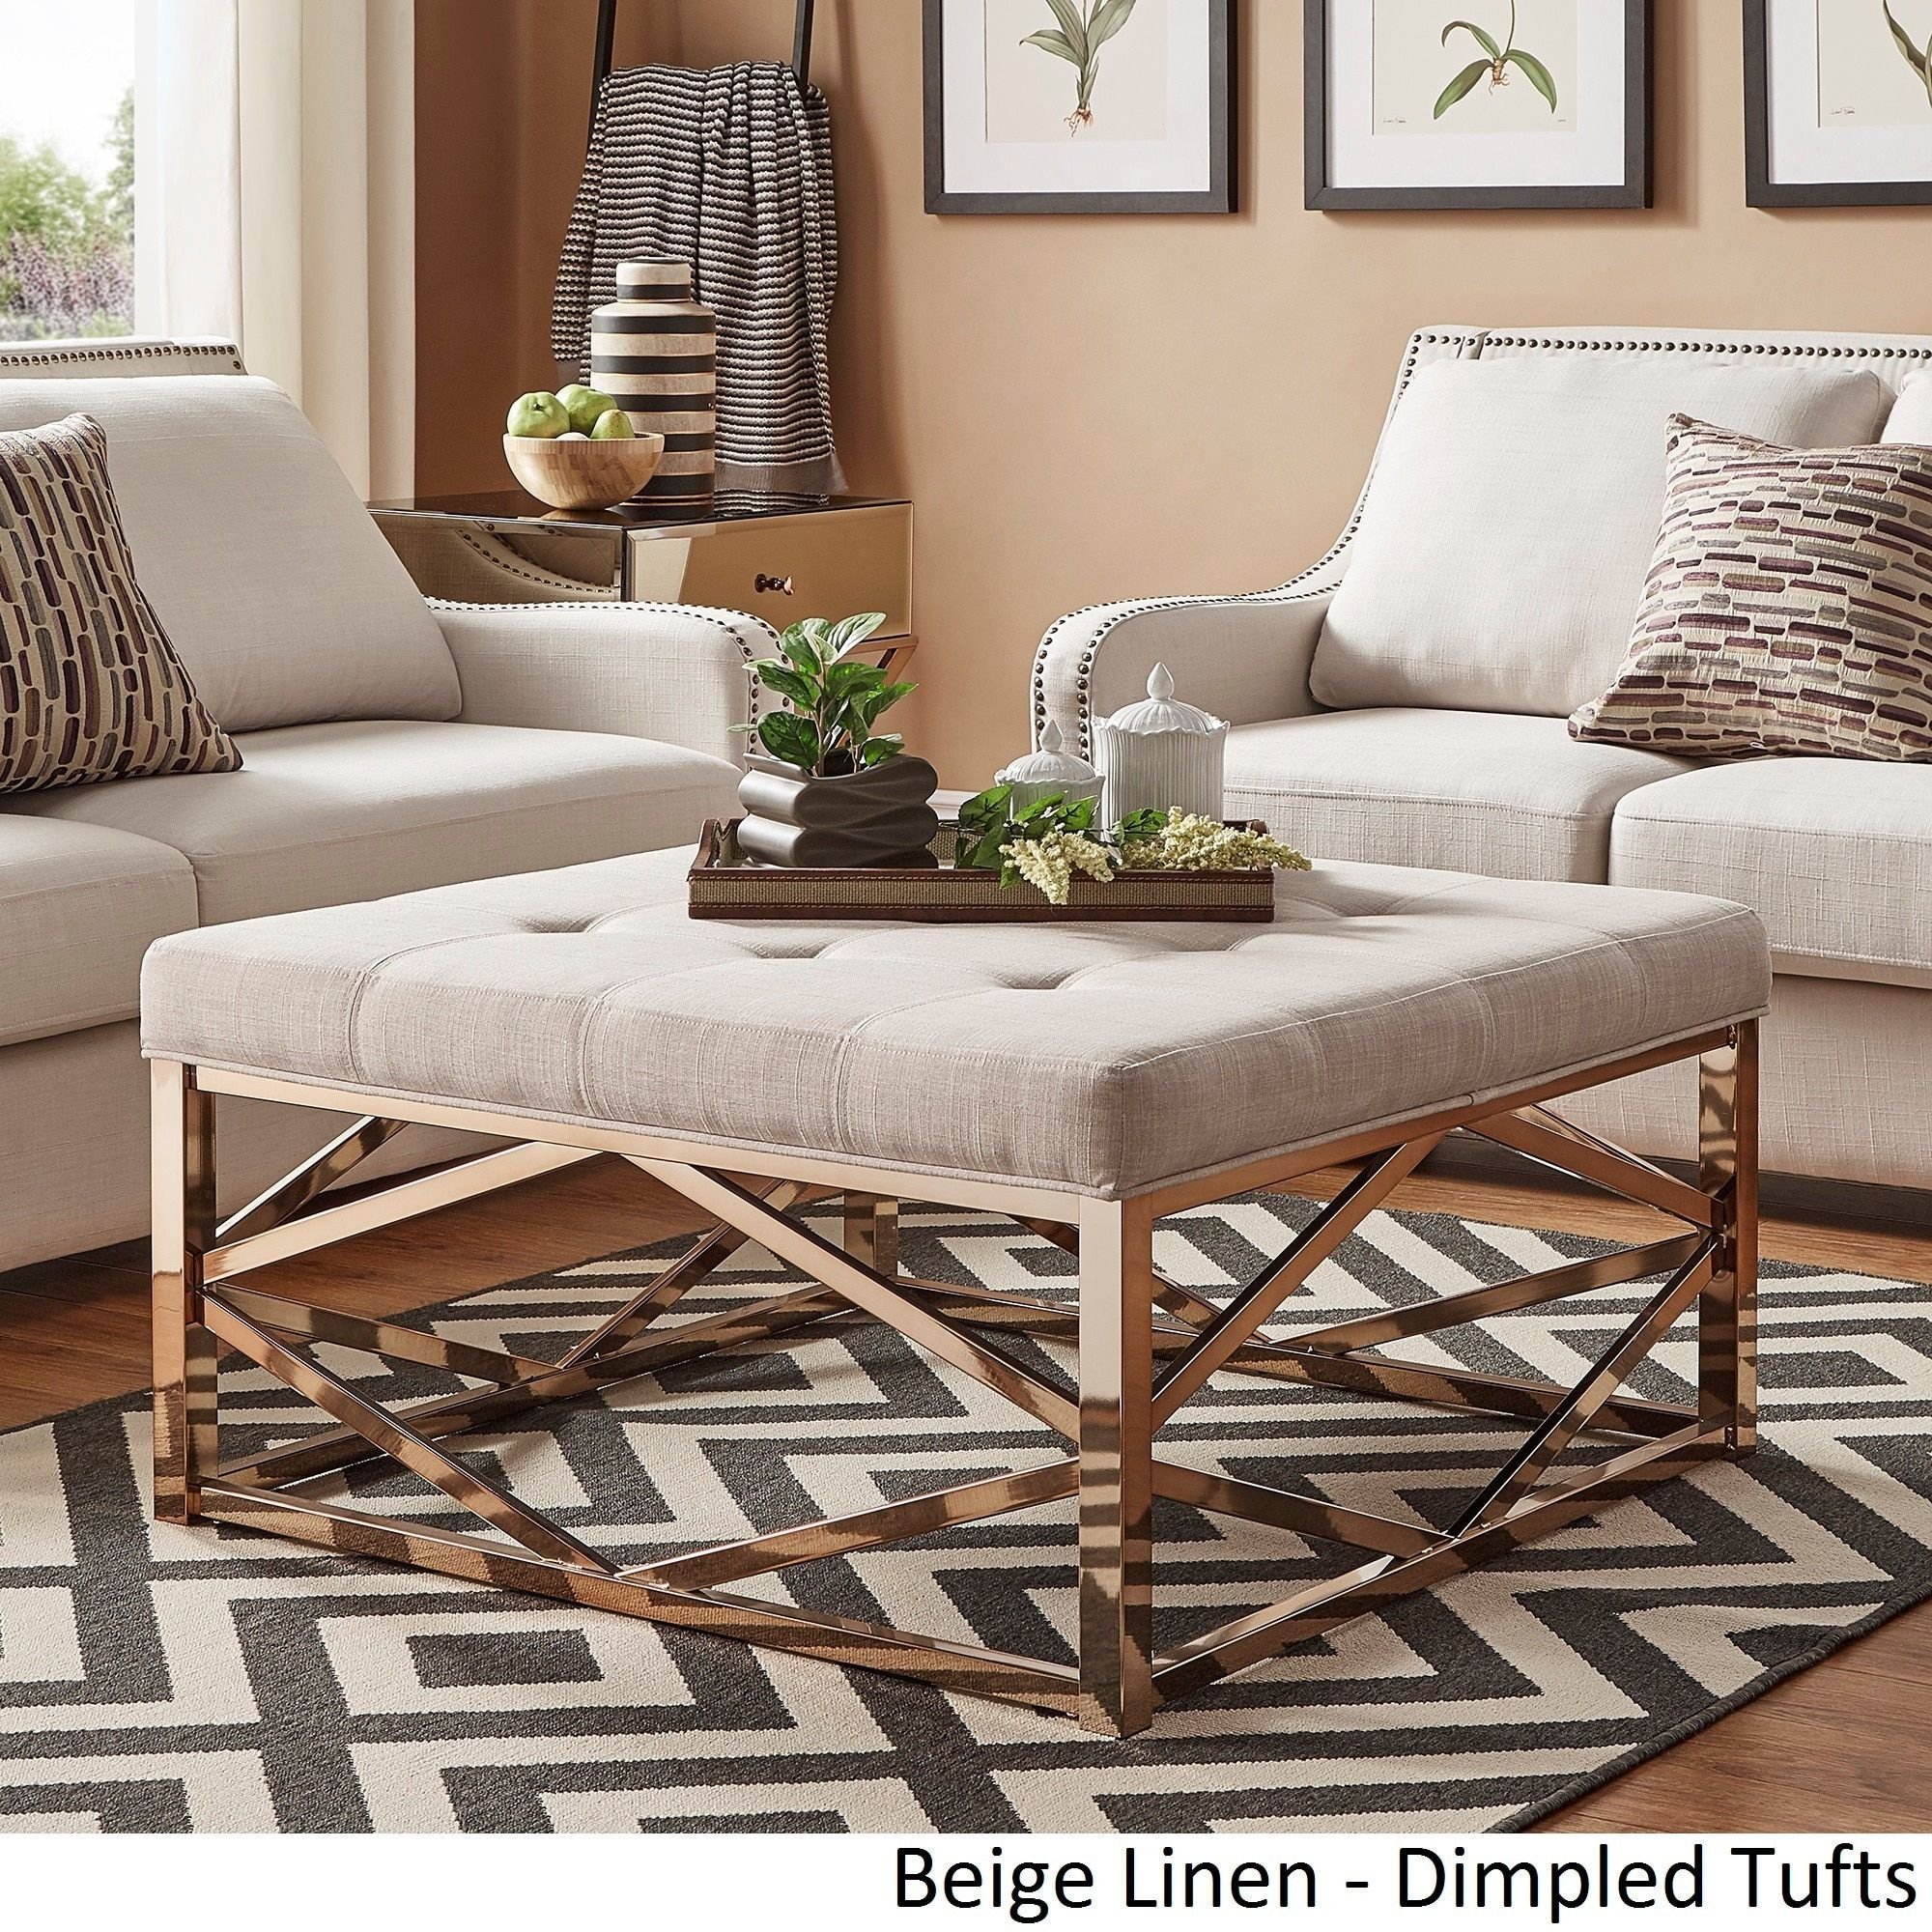 Solene Geometric Base Square Ottoman Coffee Table - Champagne Gold by  INSPIRE Q | Overstock.